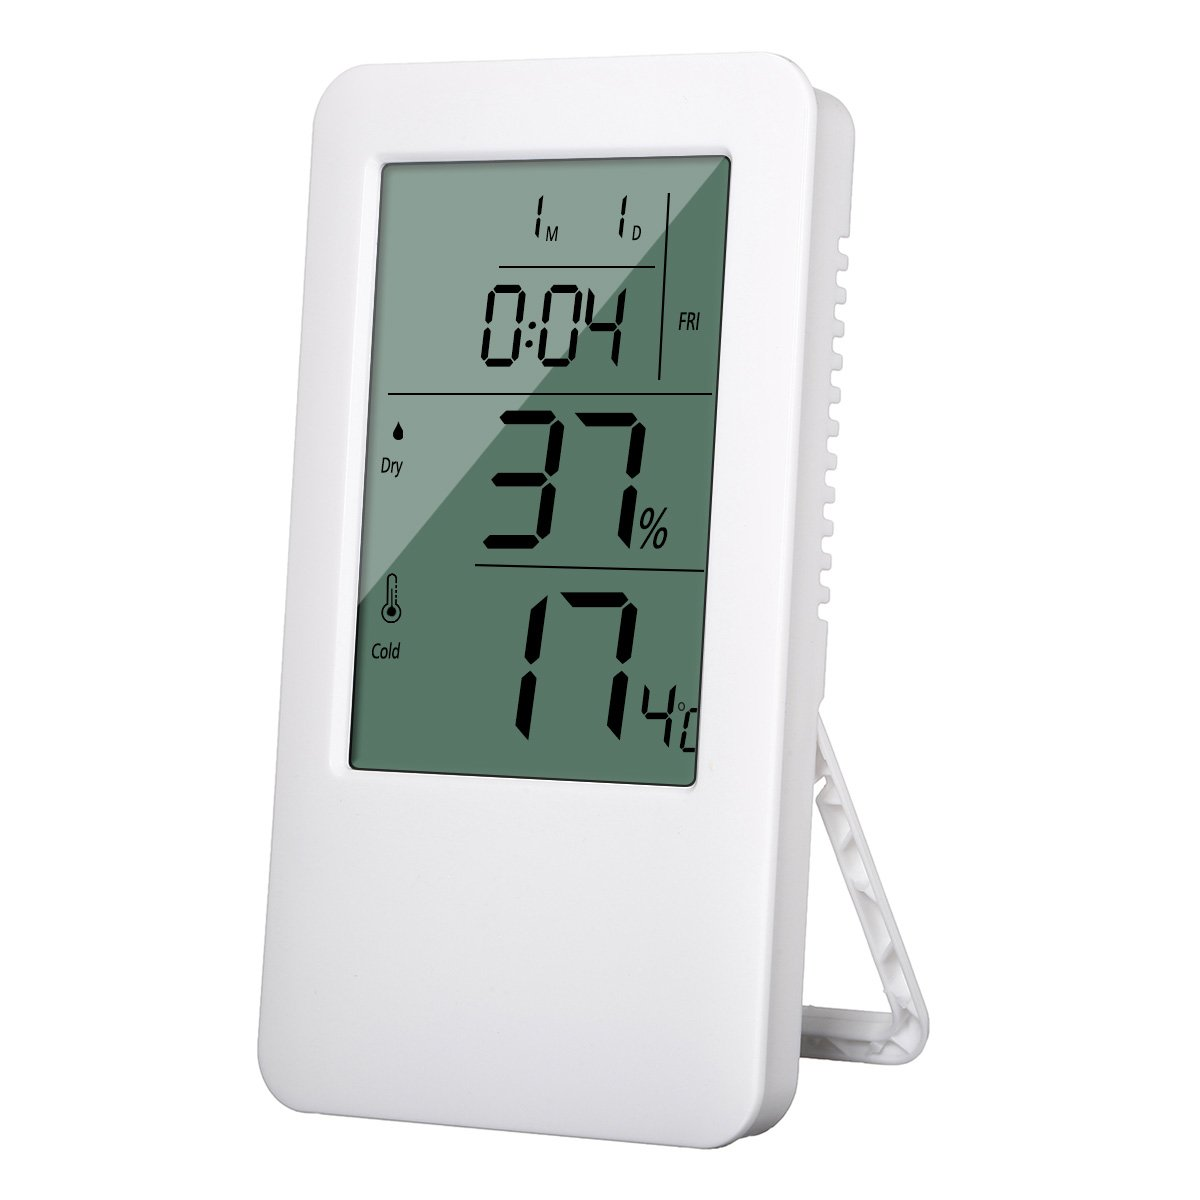 Digital Hygrometer Room Thermometer, SGODDE Large LCD Screen Voice Control Backlight Alarm Clock Humidity Gauge Indoor Temperature Humidity Monitor Sensor Humidity Meter